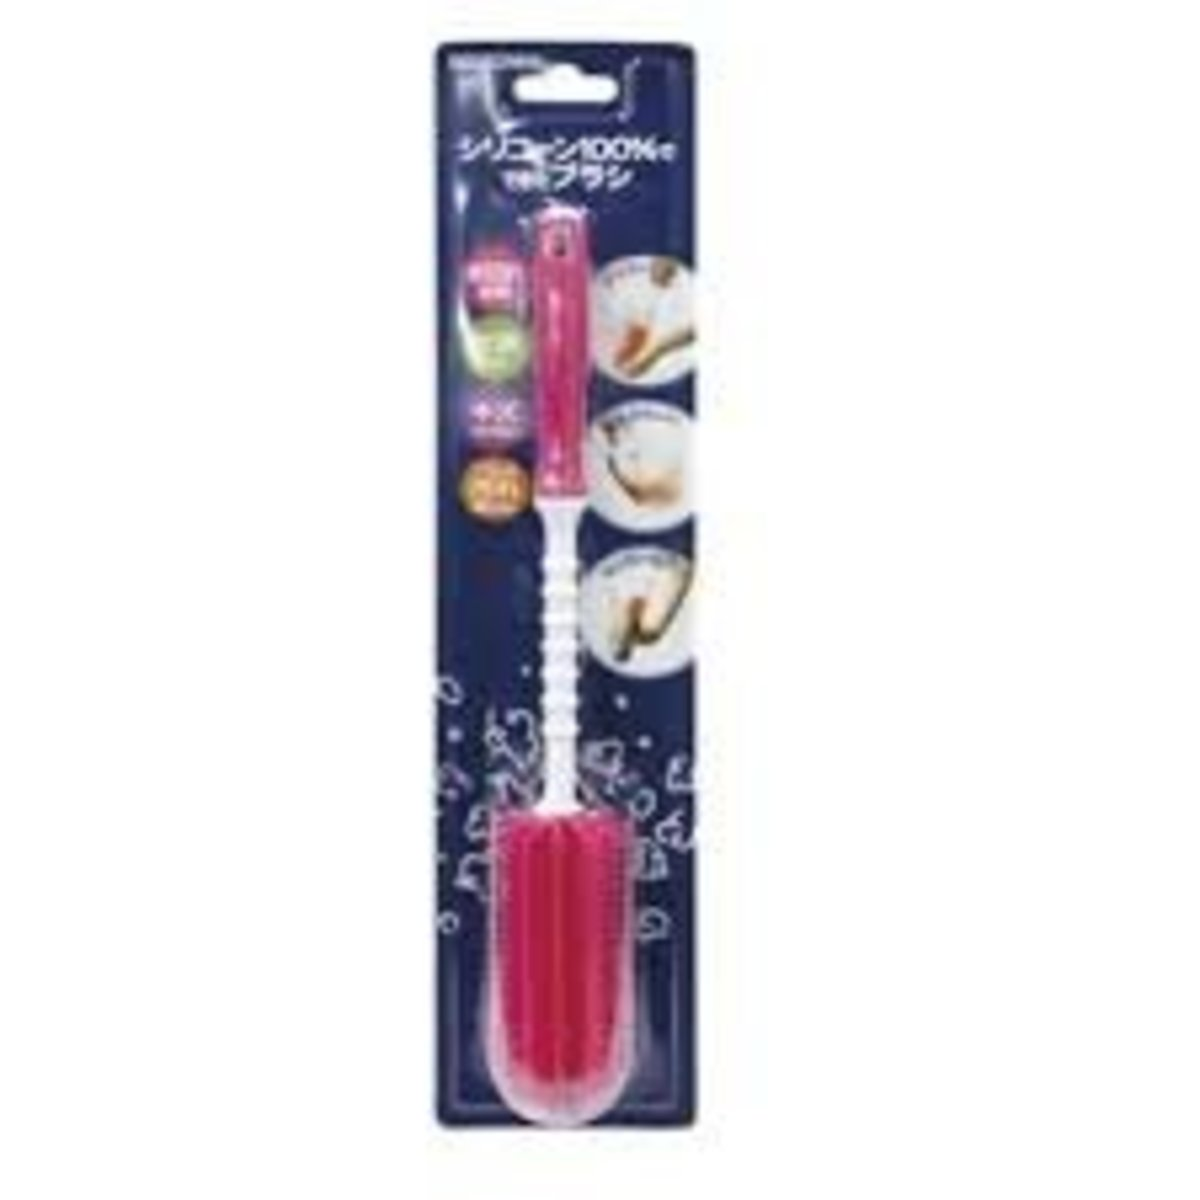 Edison silicone bottle brush (Pink)